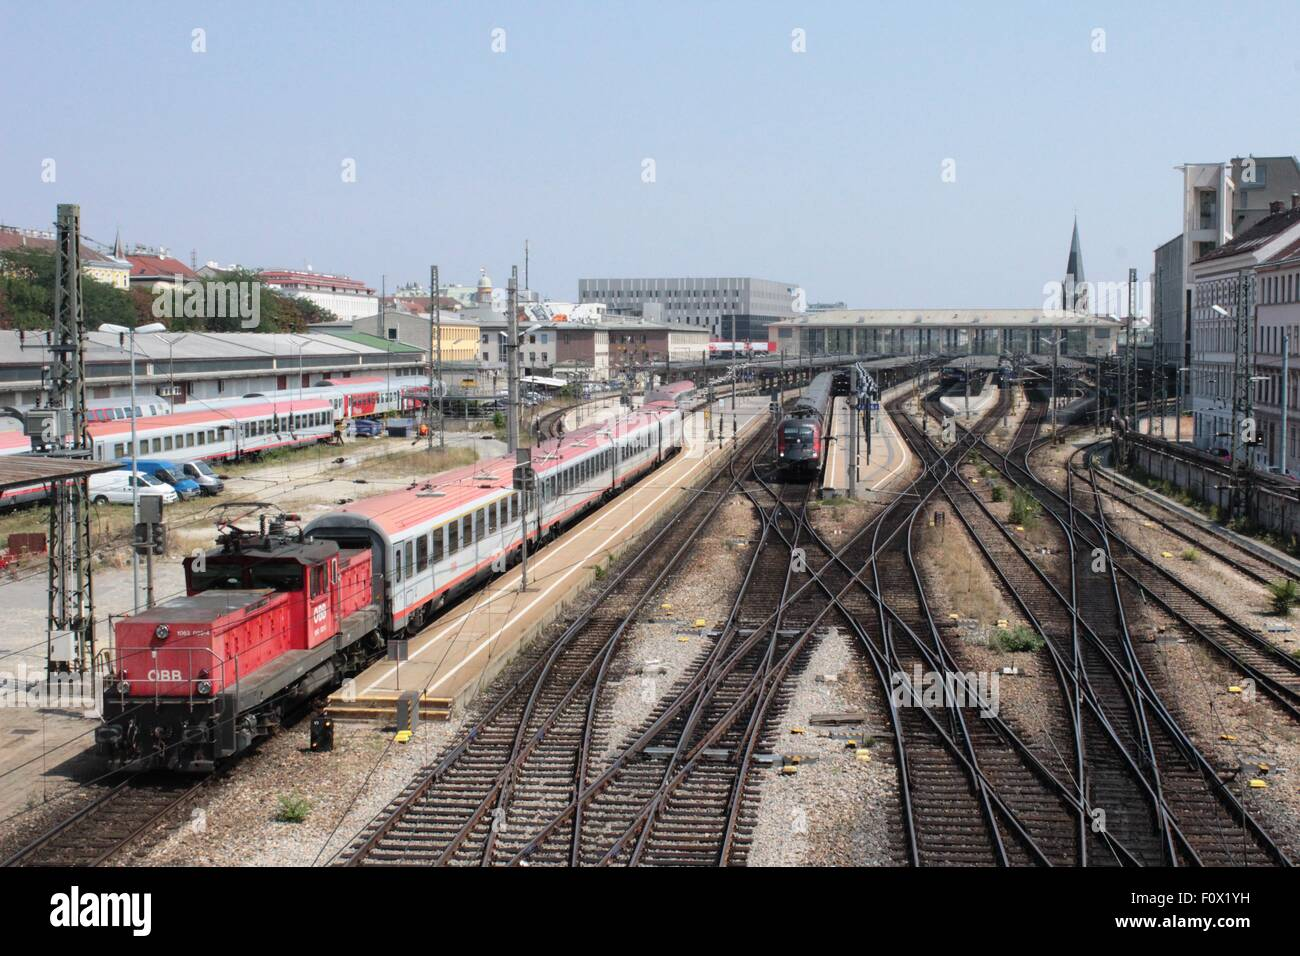 Railway track with trains at the entrance to Westbahnhof railway station, Vienna, Austria with electric loco shunting - Stock Image